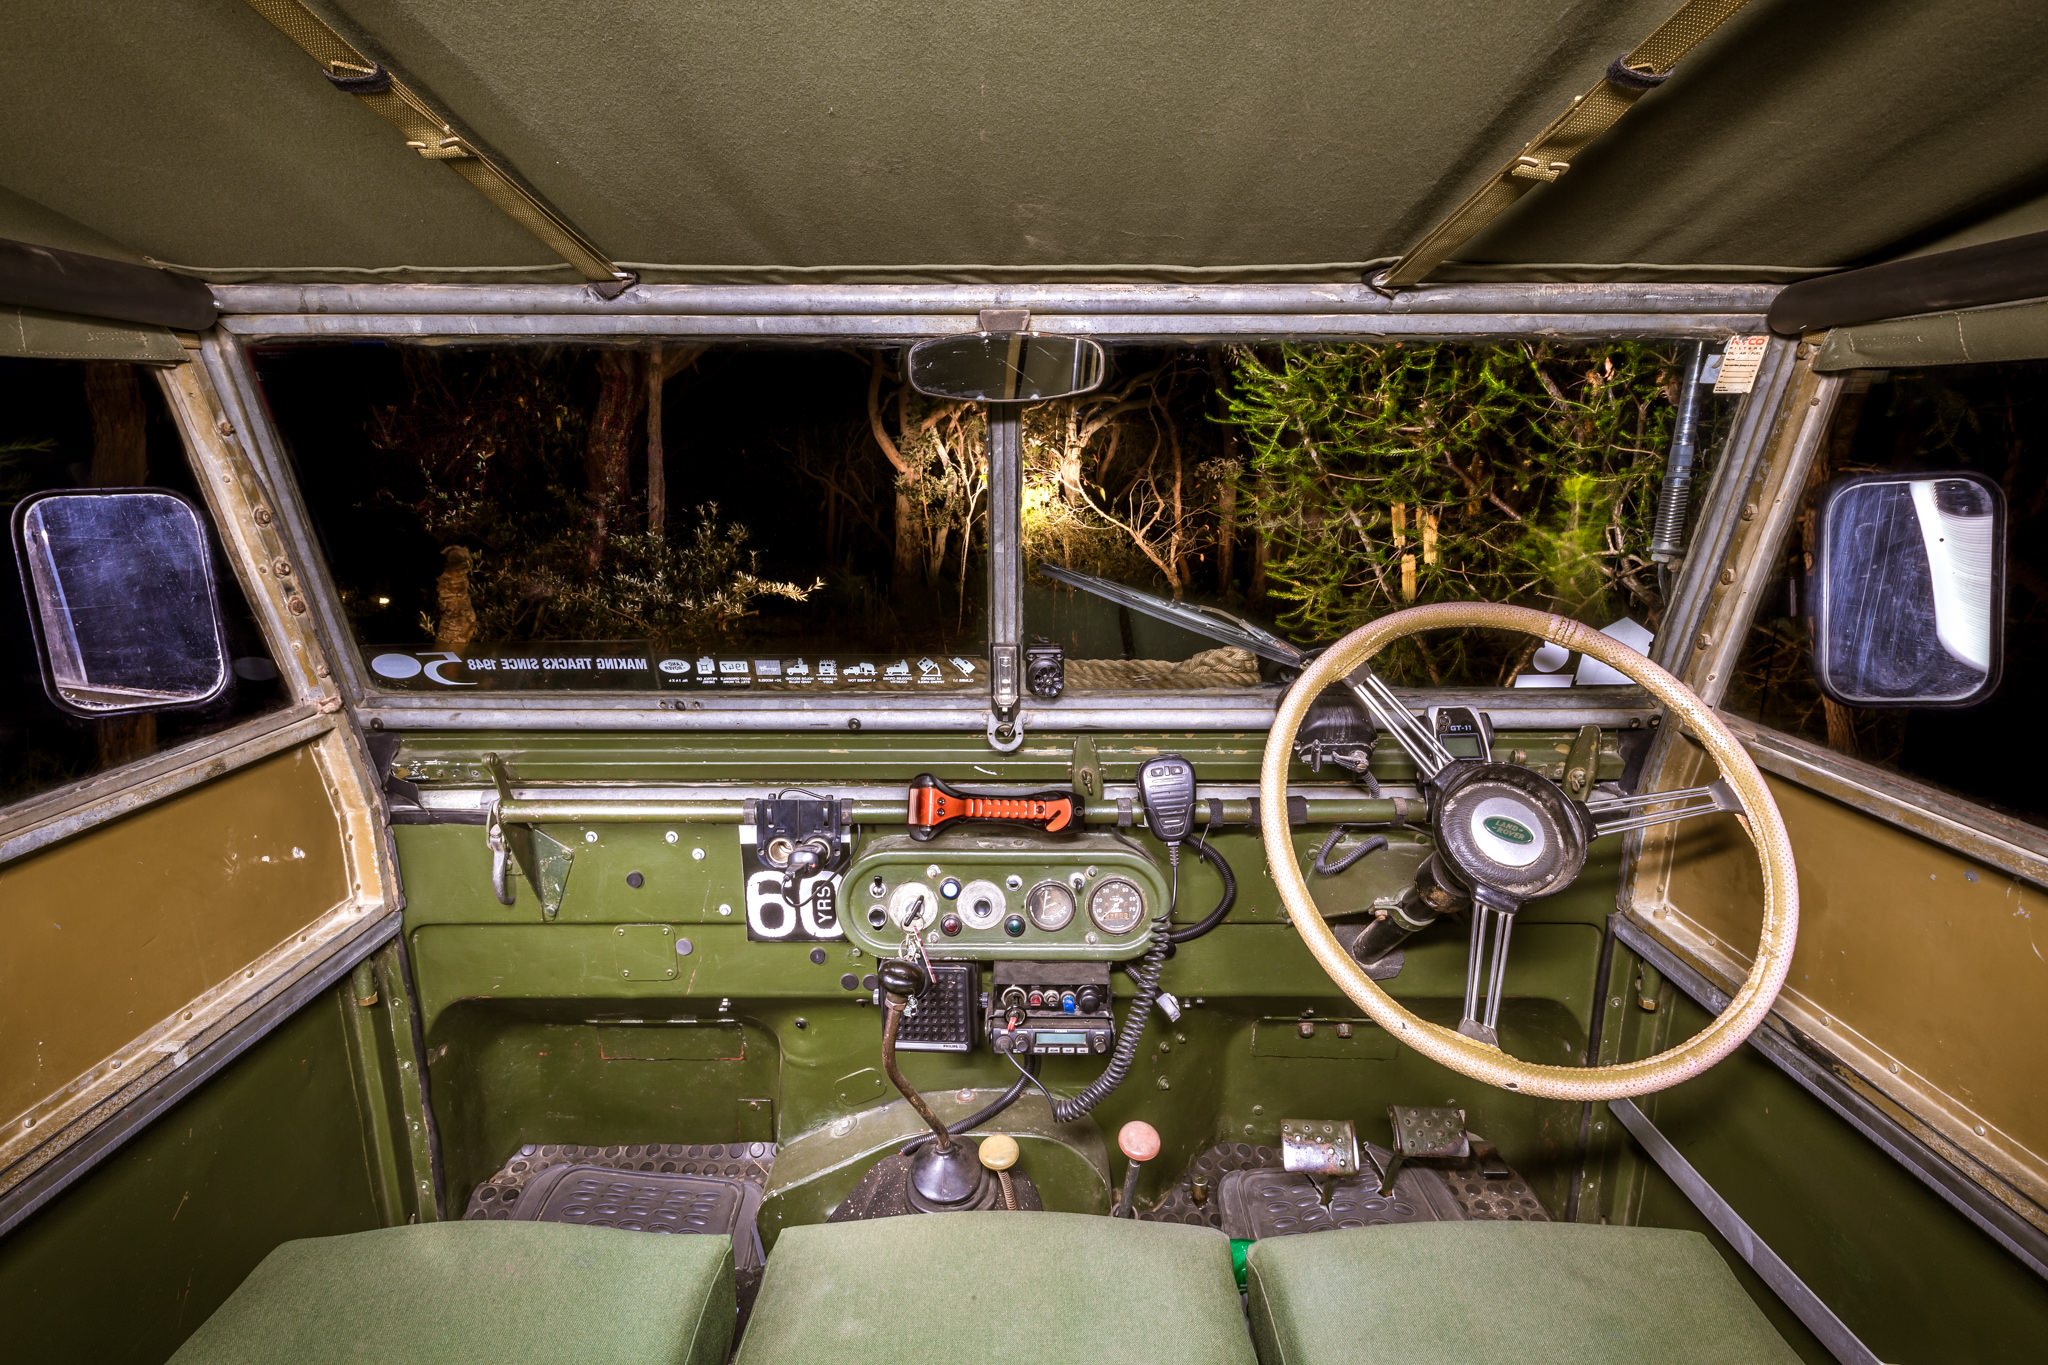 1951 Series 1 Land Rover Interior Dash - Classic Car Photography